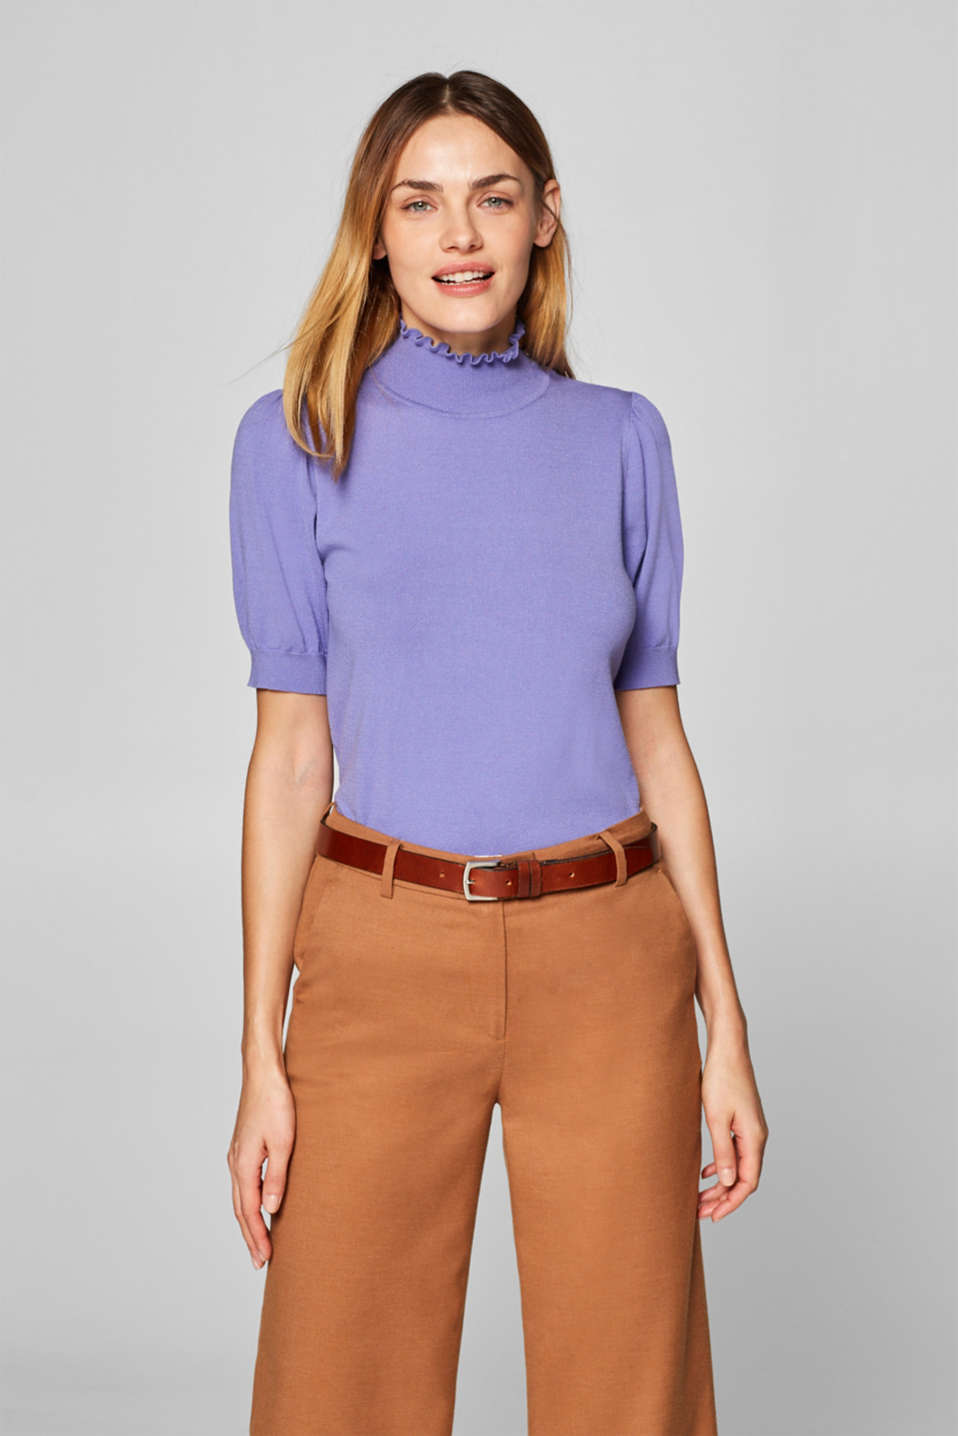 Esprit - Short-sleeved jumper with a frilled band collar